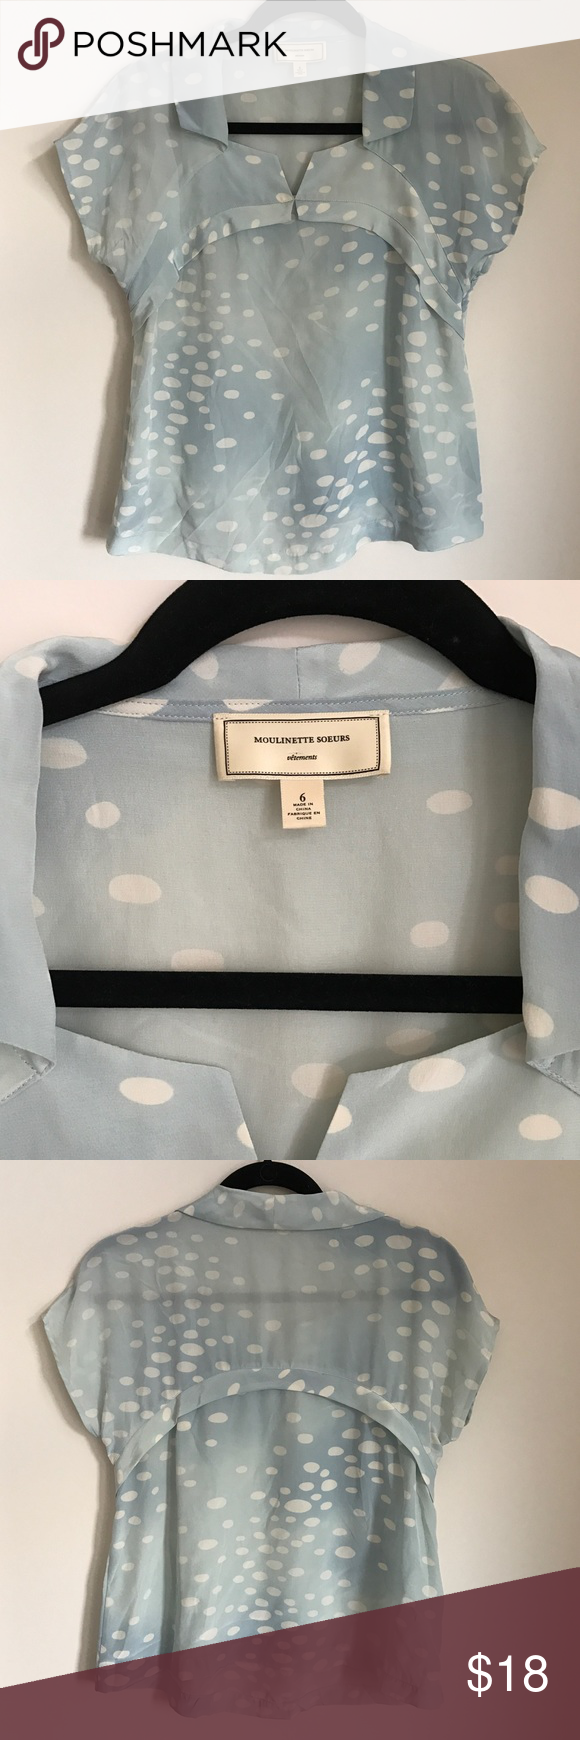 Anthropology Moulinette Soeurs Top Beautiful light blue Sheer polka dot top. Top is a size 6. Please feel free to contact with any questions or additional photo requests. Thank you for your interest! Anthropologie Tops